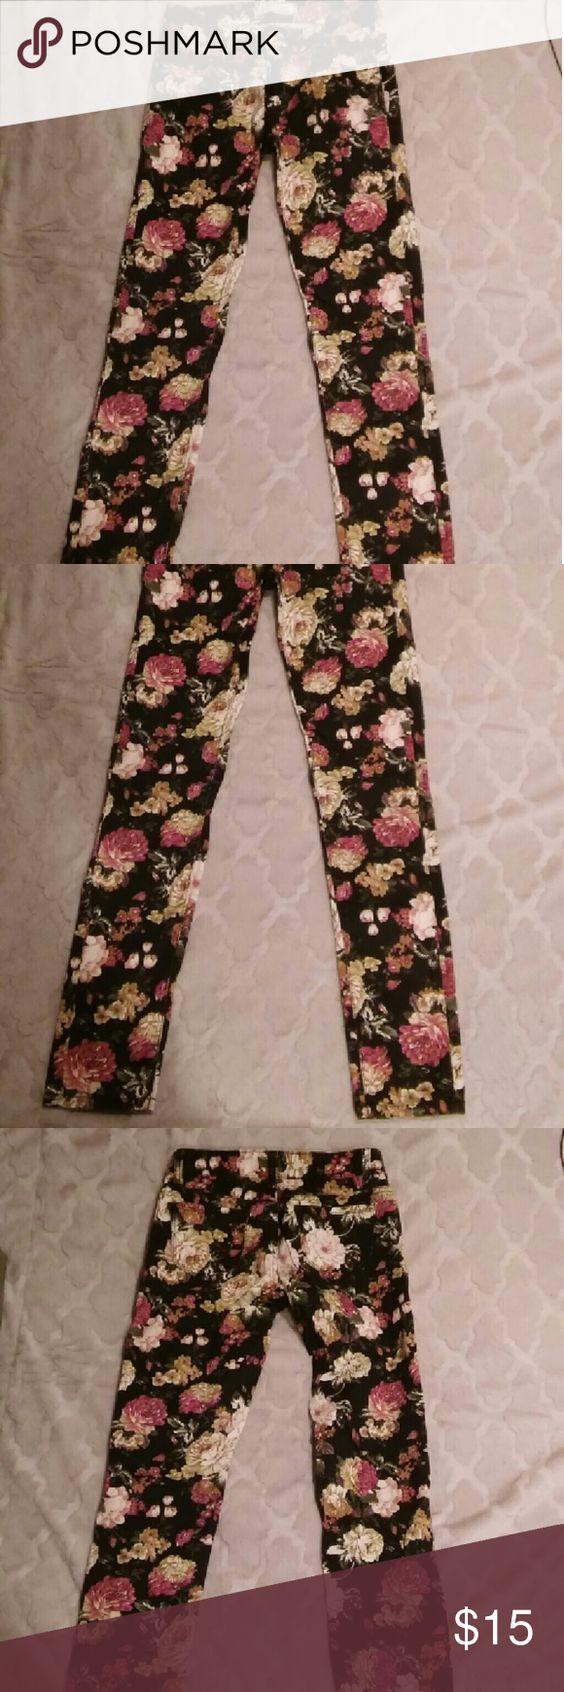 : : Pants Denim Material Floral Jeans : : selling cute pre-loved, pre-owned floral denim material pants in good condition  note: says size medium but tag also says US 10. While this is no guarantee, my best guess is it would fit about a size 26 or 27. It does have some slight elasticity as well.  : : all items sold are carefully packaged with a thank you card inside. : : MM Sweet Jeans Straight Leg